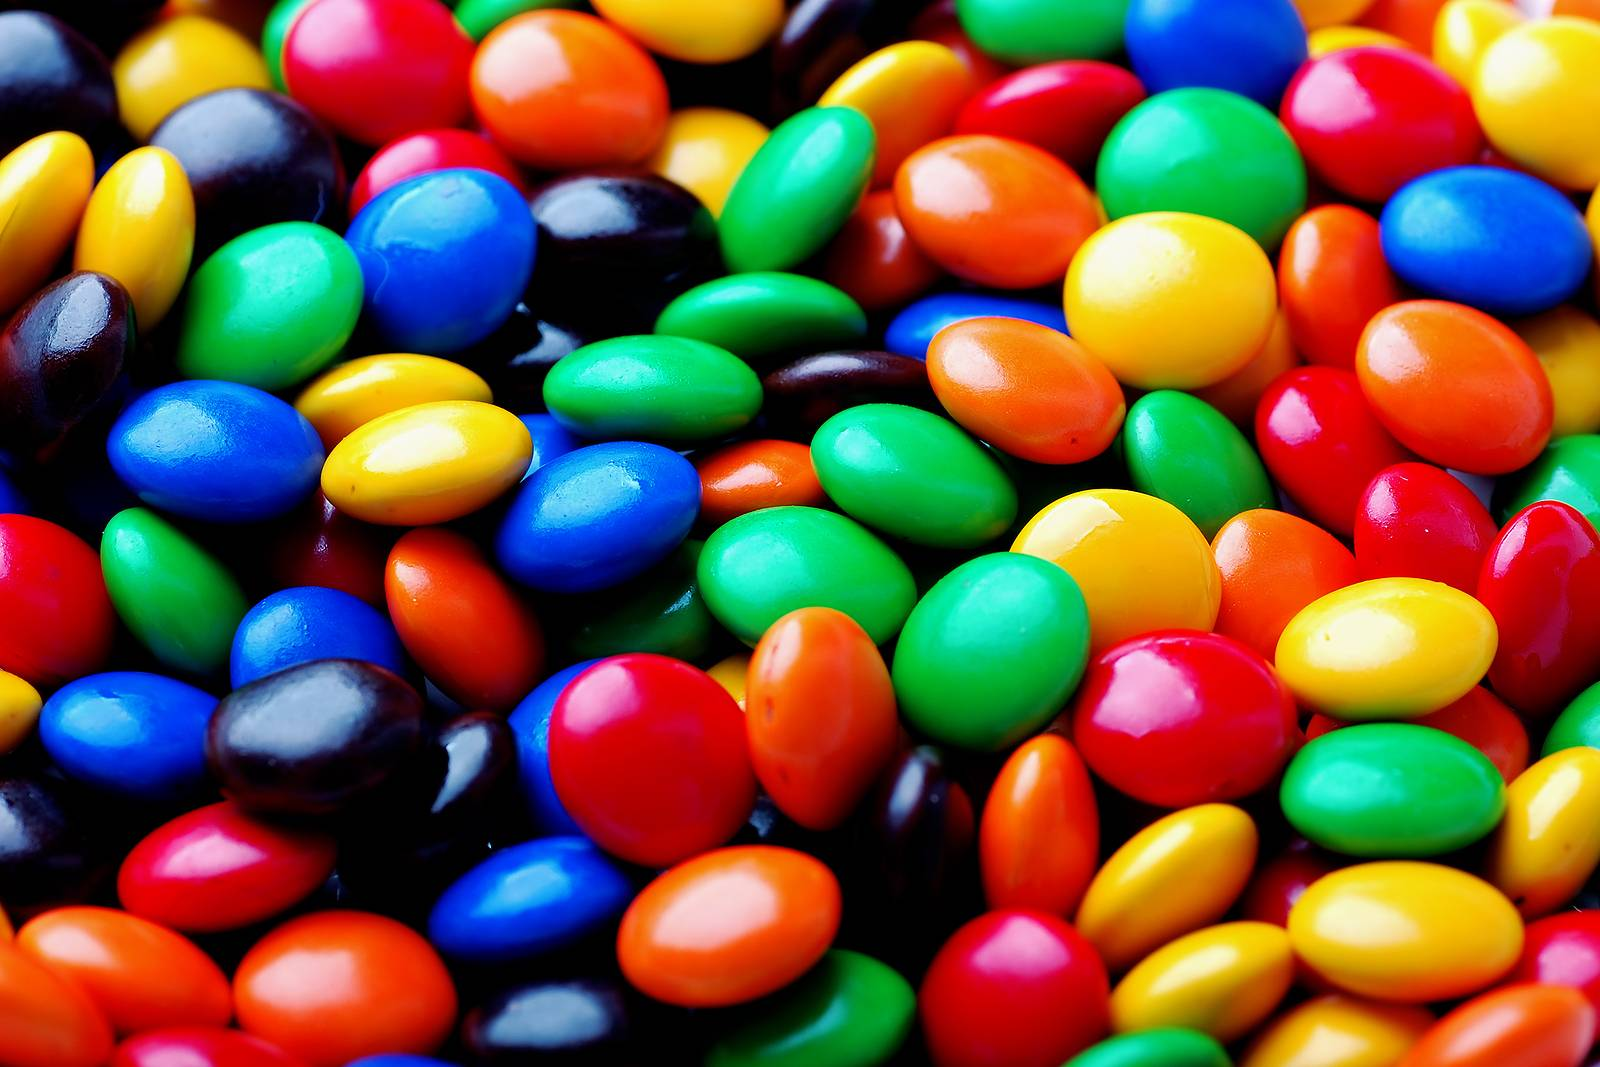 M M Desktop Wallpaper: M & M's Wallpaper